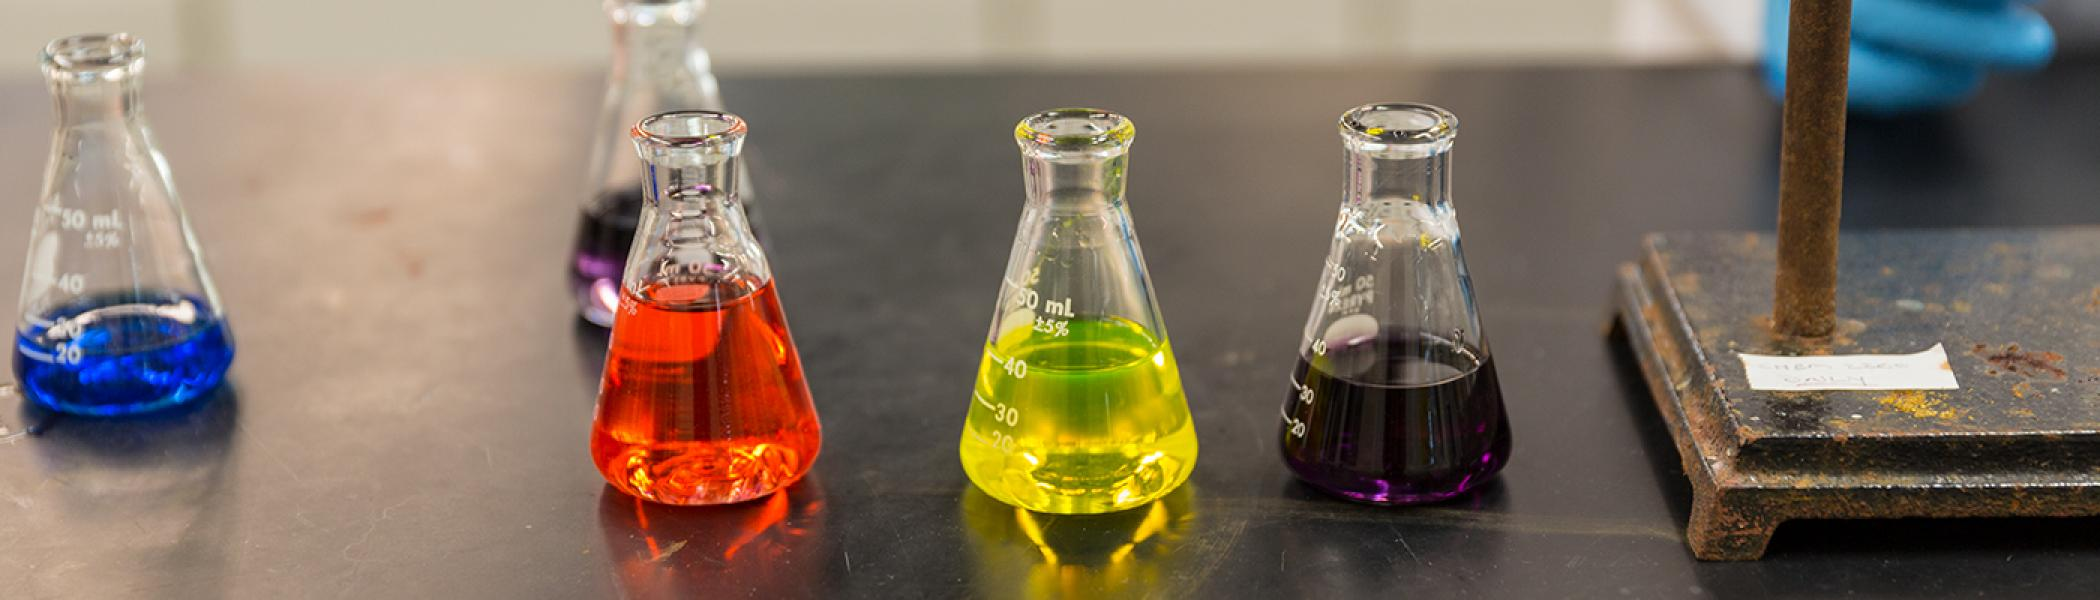 Five chemistry Erlenmeyer flasks on a black chemistry lab bench with different coloured liquids in them